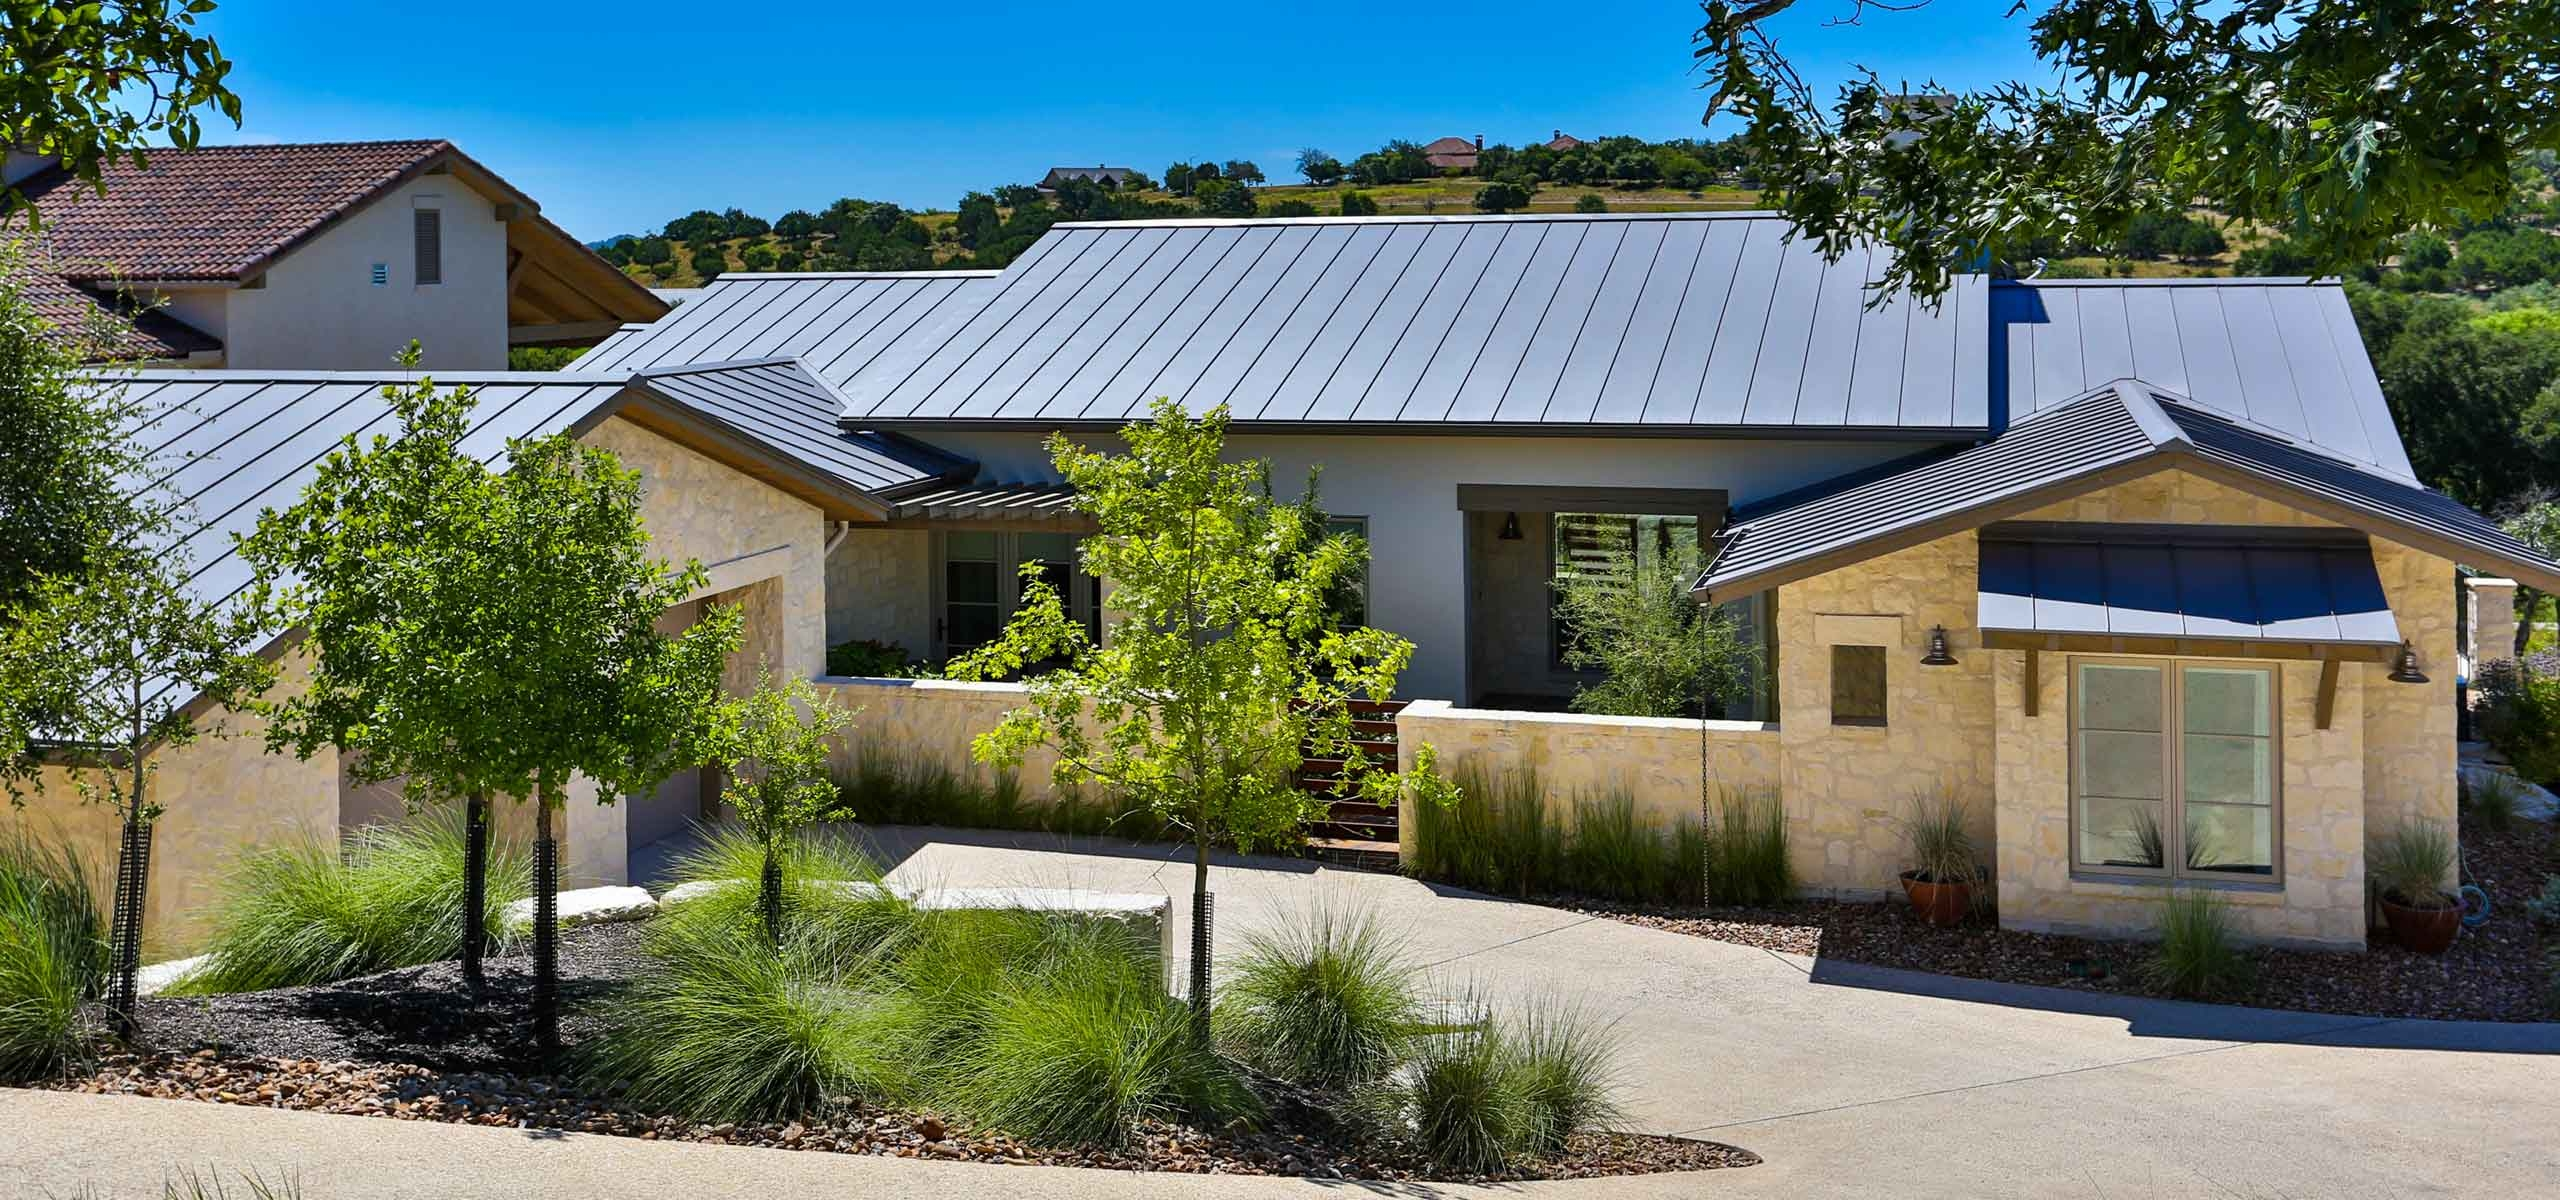 Home texas home plans for Texas style house plans